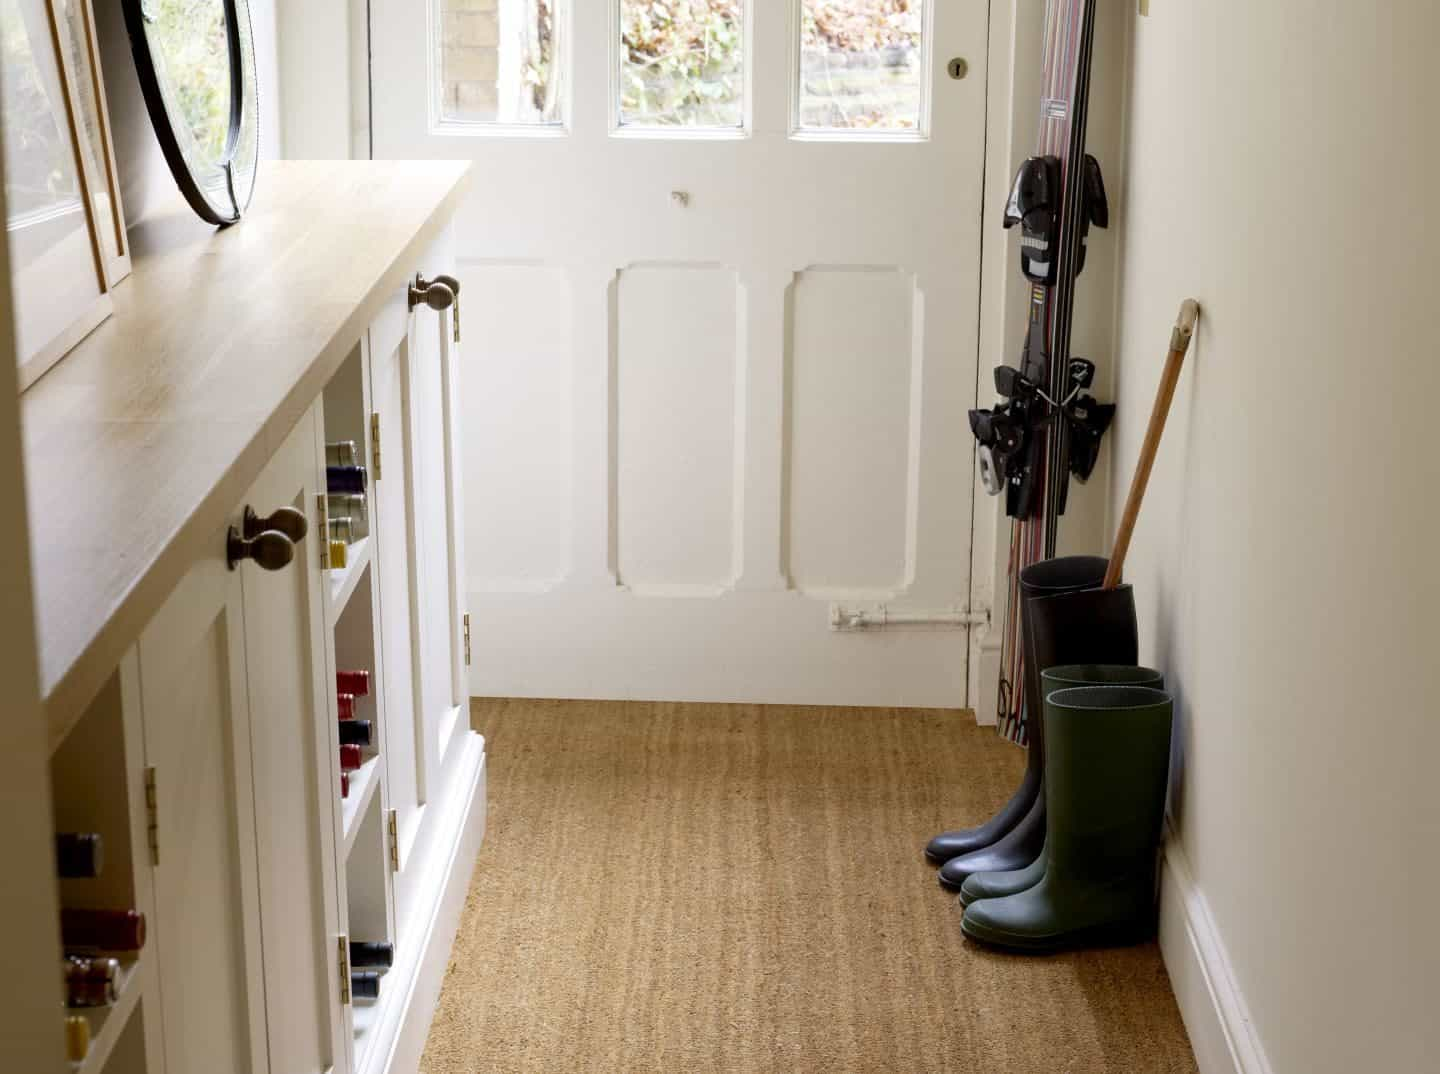 Kersaint Cobb - Coir, Boucle Natural Flooring